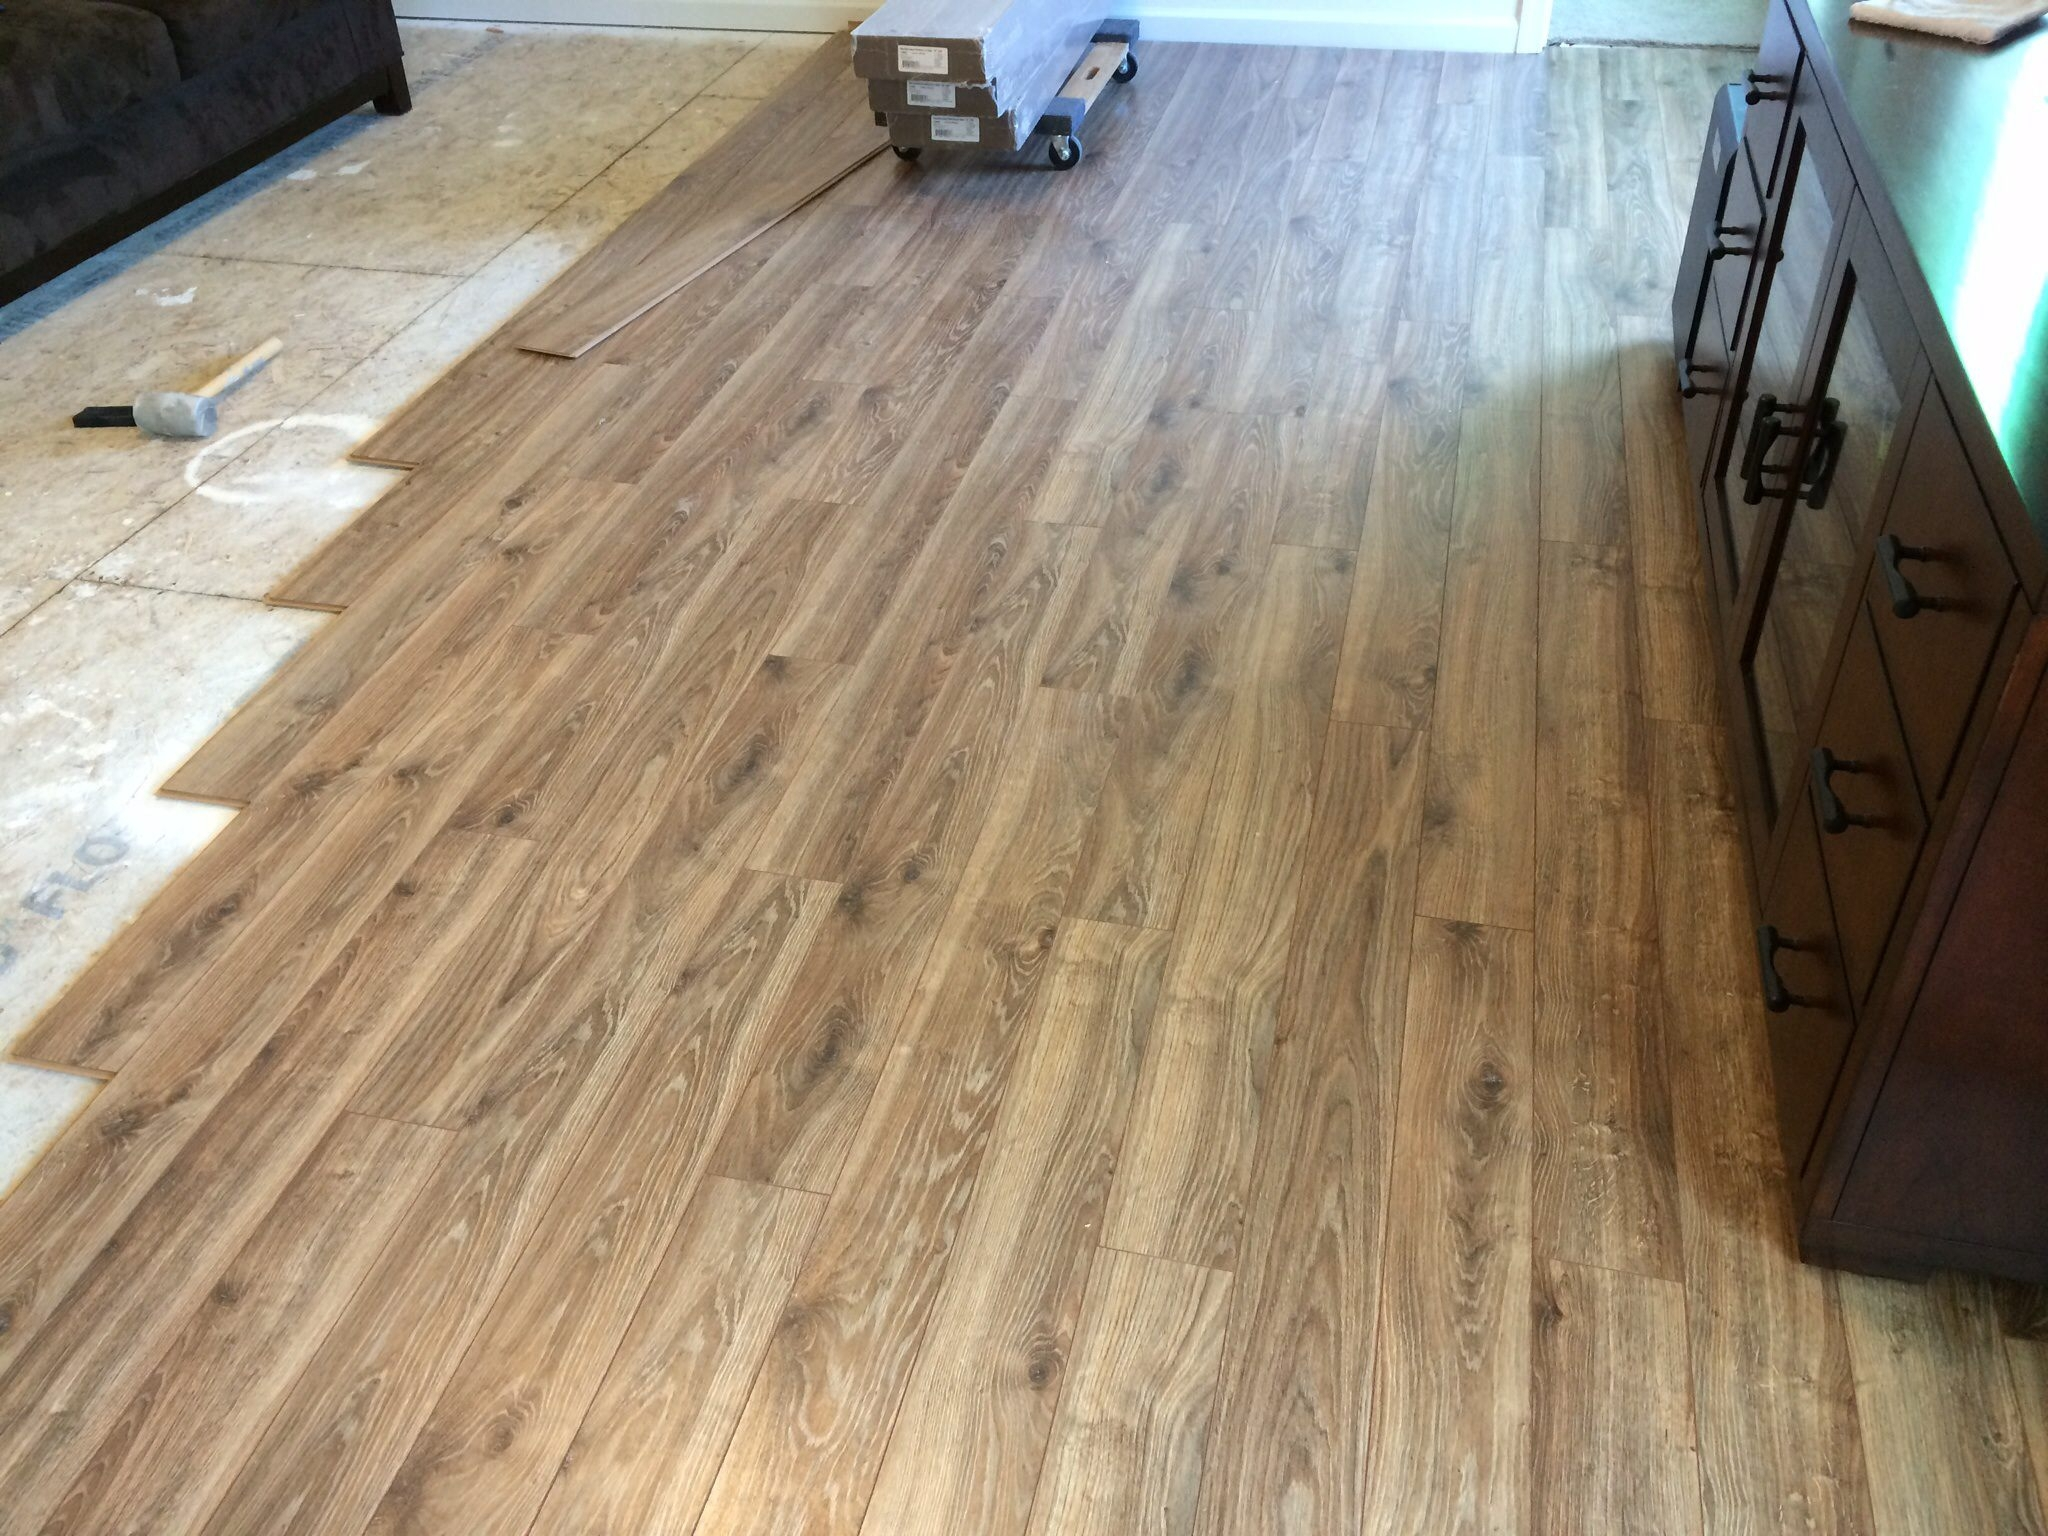 Permalink to Oak Wood Floor Edging